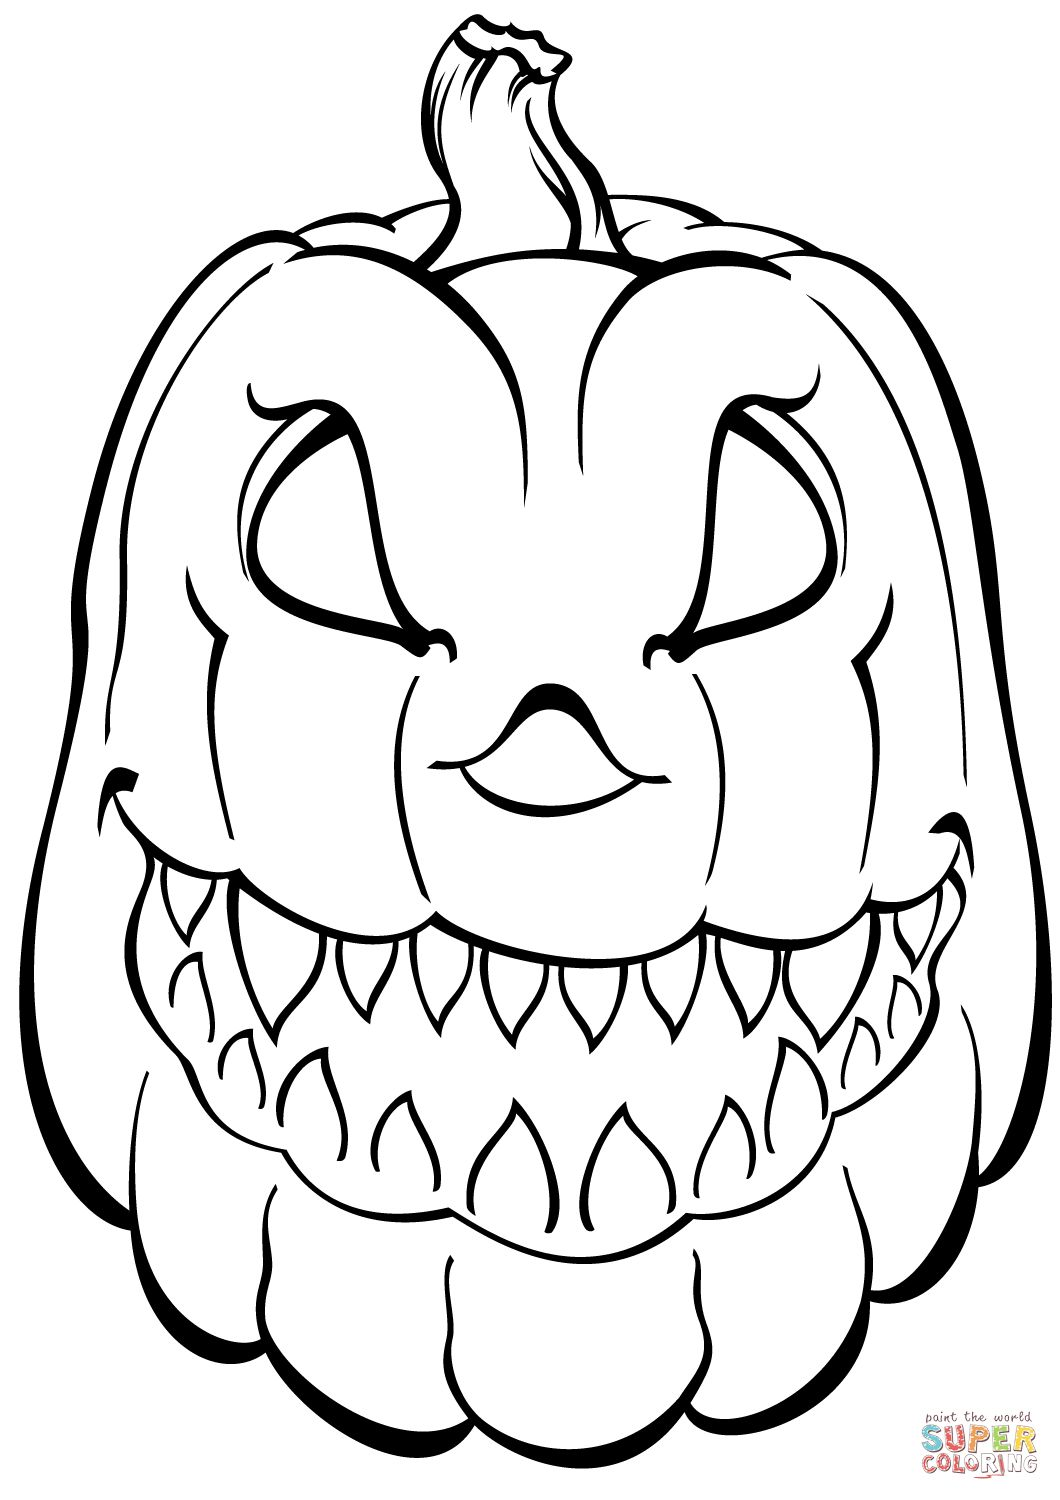 Free Printable Pumpkin Coloring Pages Scary Pumpkin